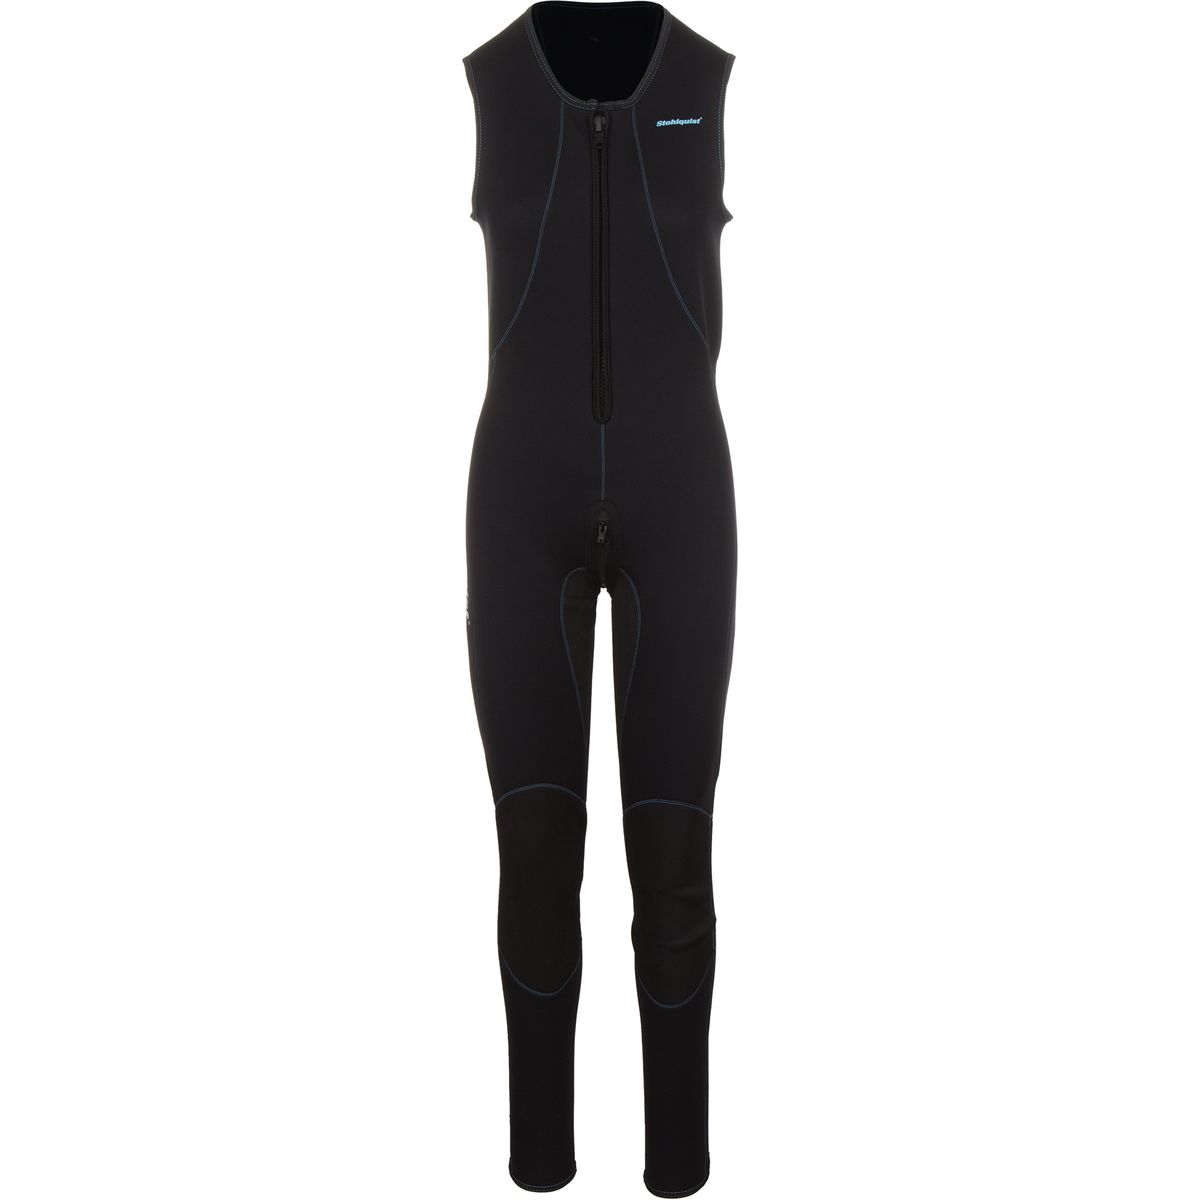 photo: Stohlquist Storm Jane 3mm wet suit